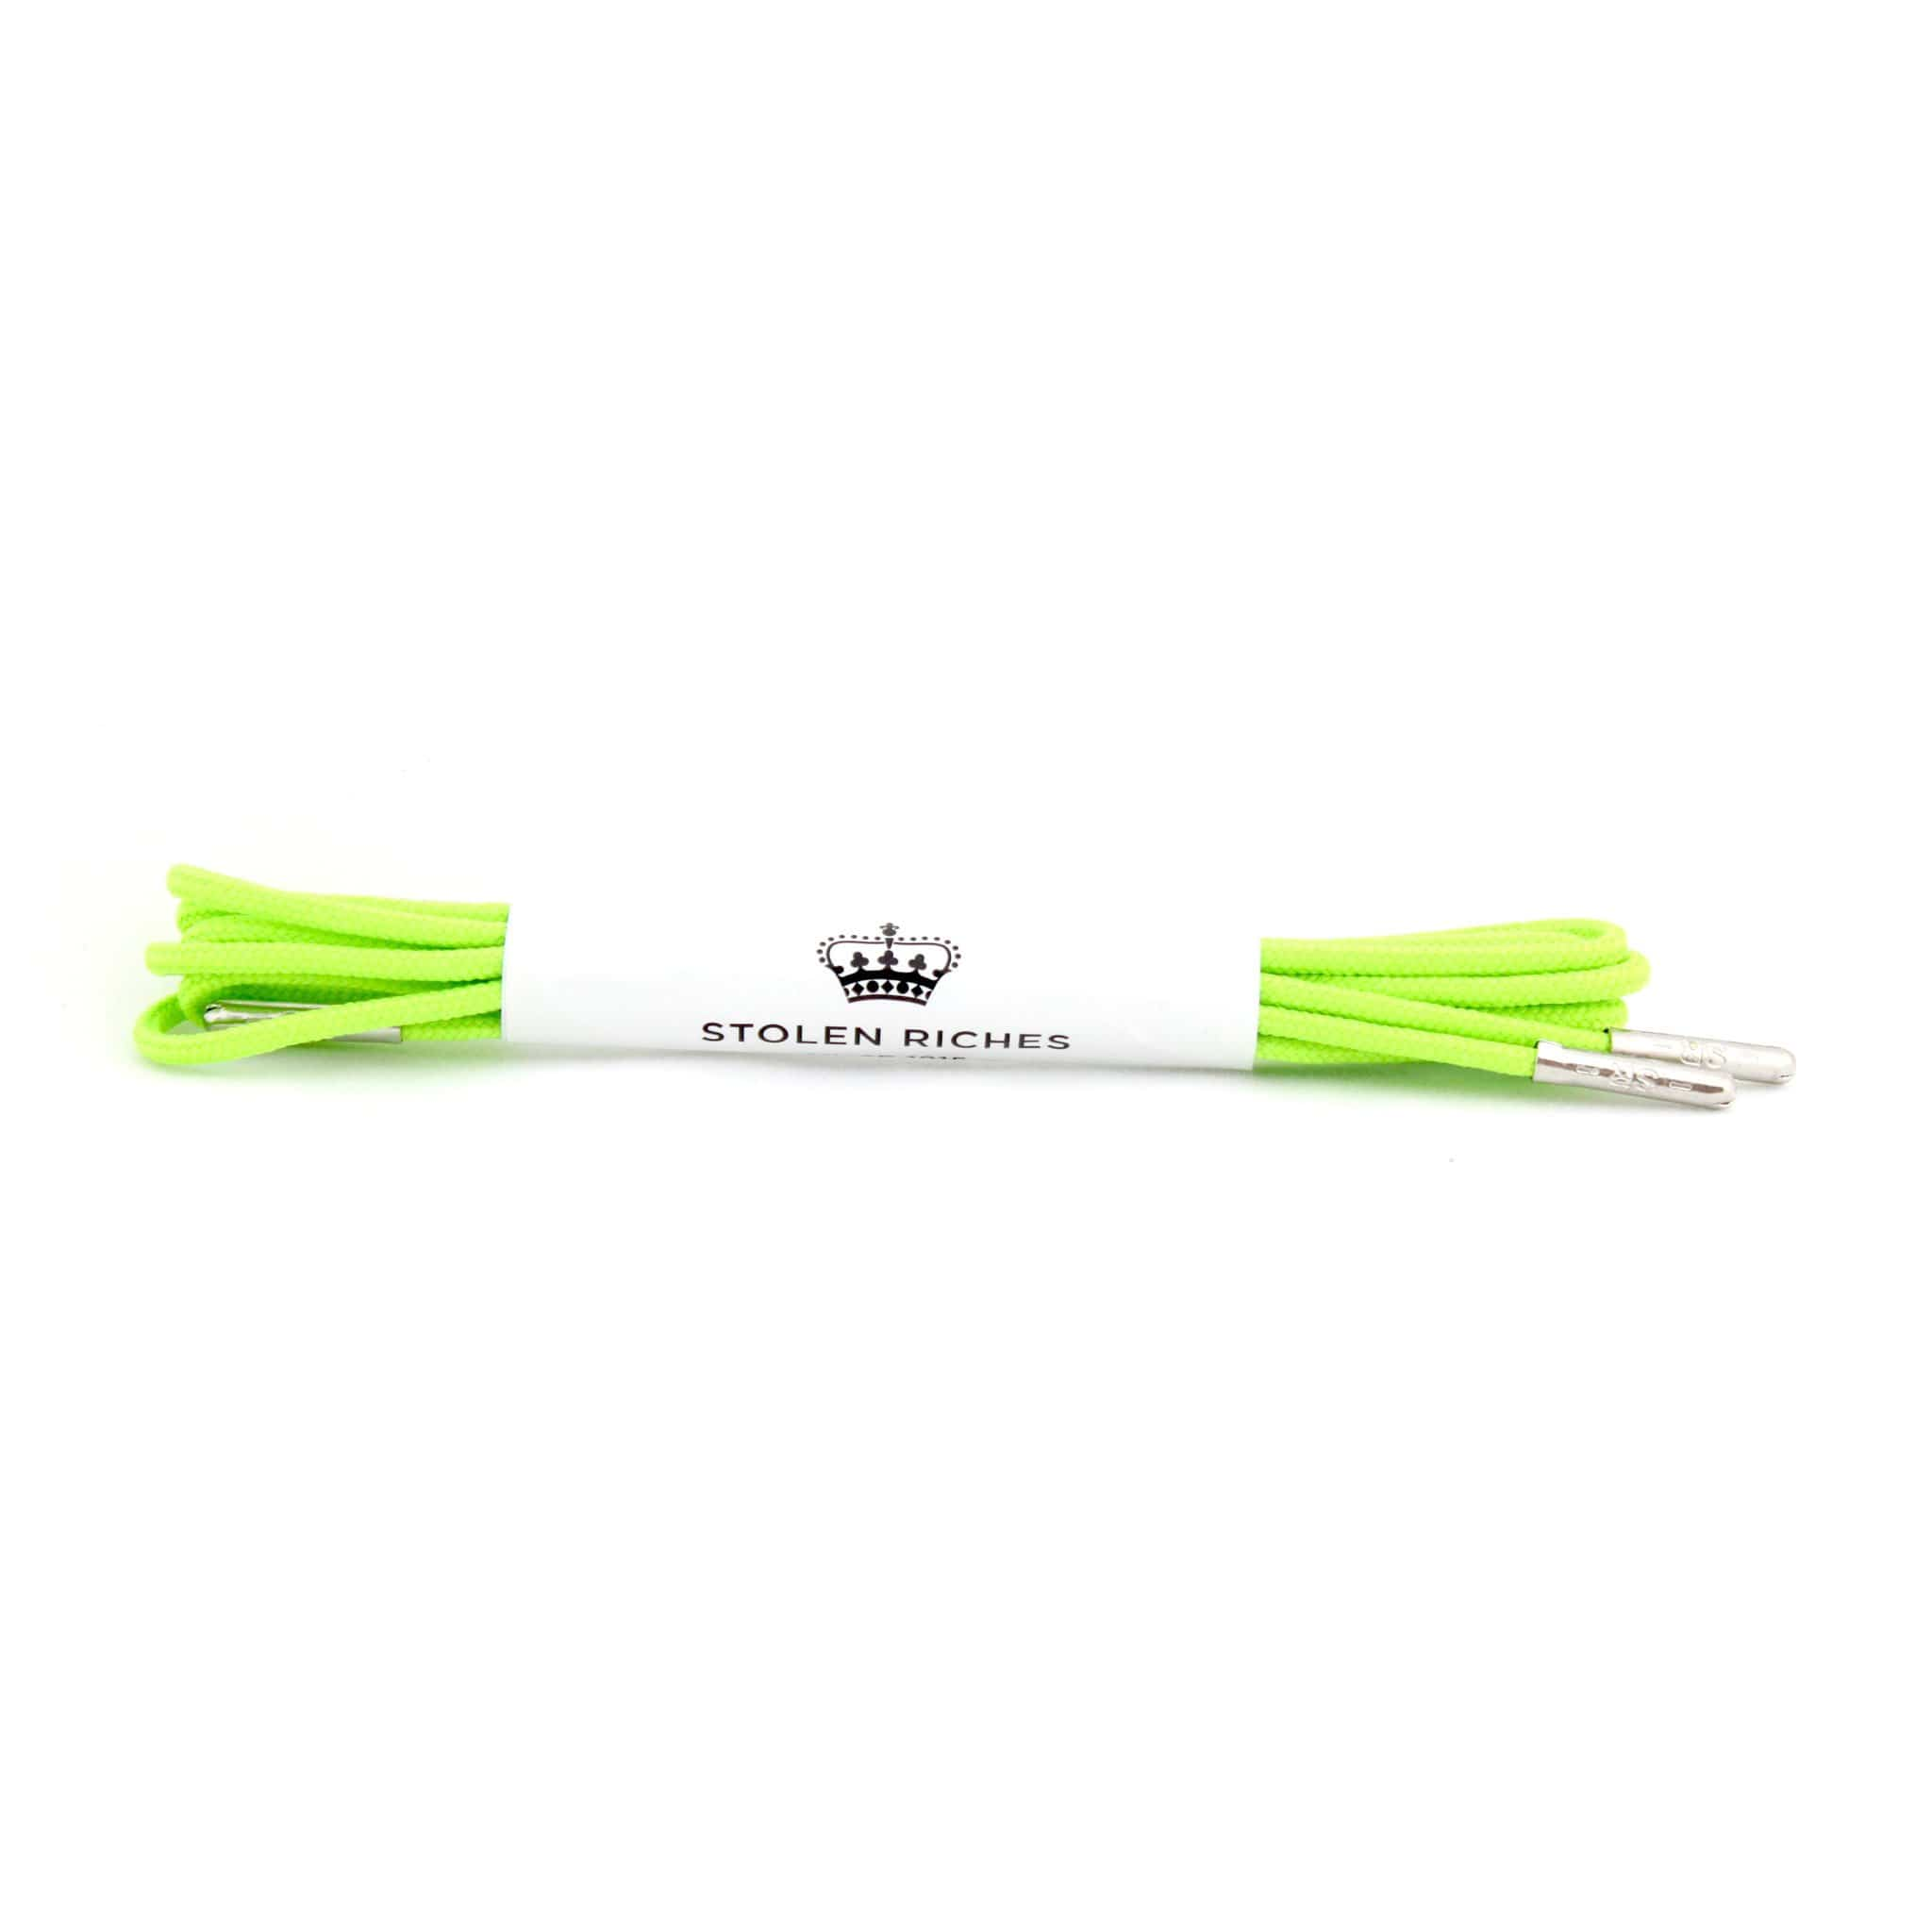 "Neon green laces for dress shoes, Length: 27""/69cm-Stolen Riches"